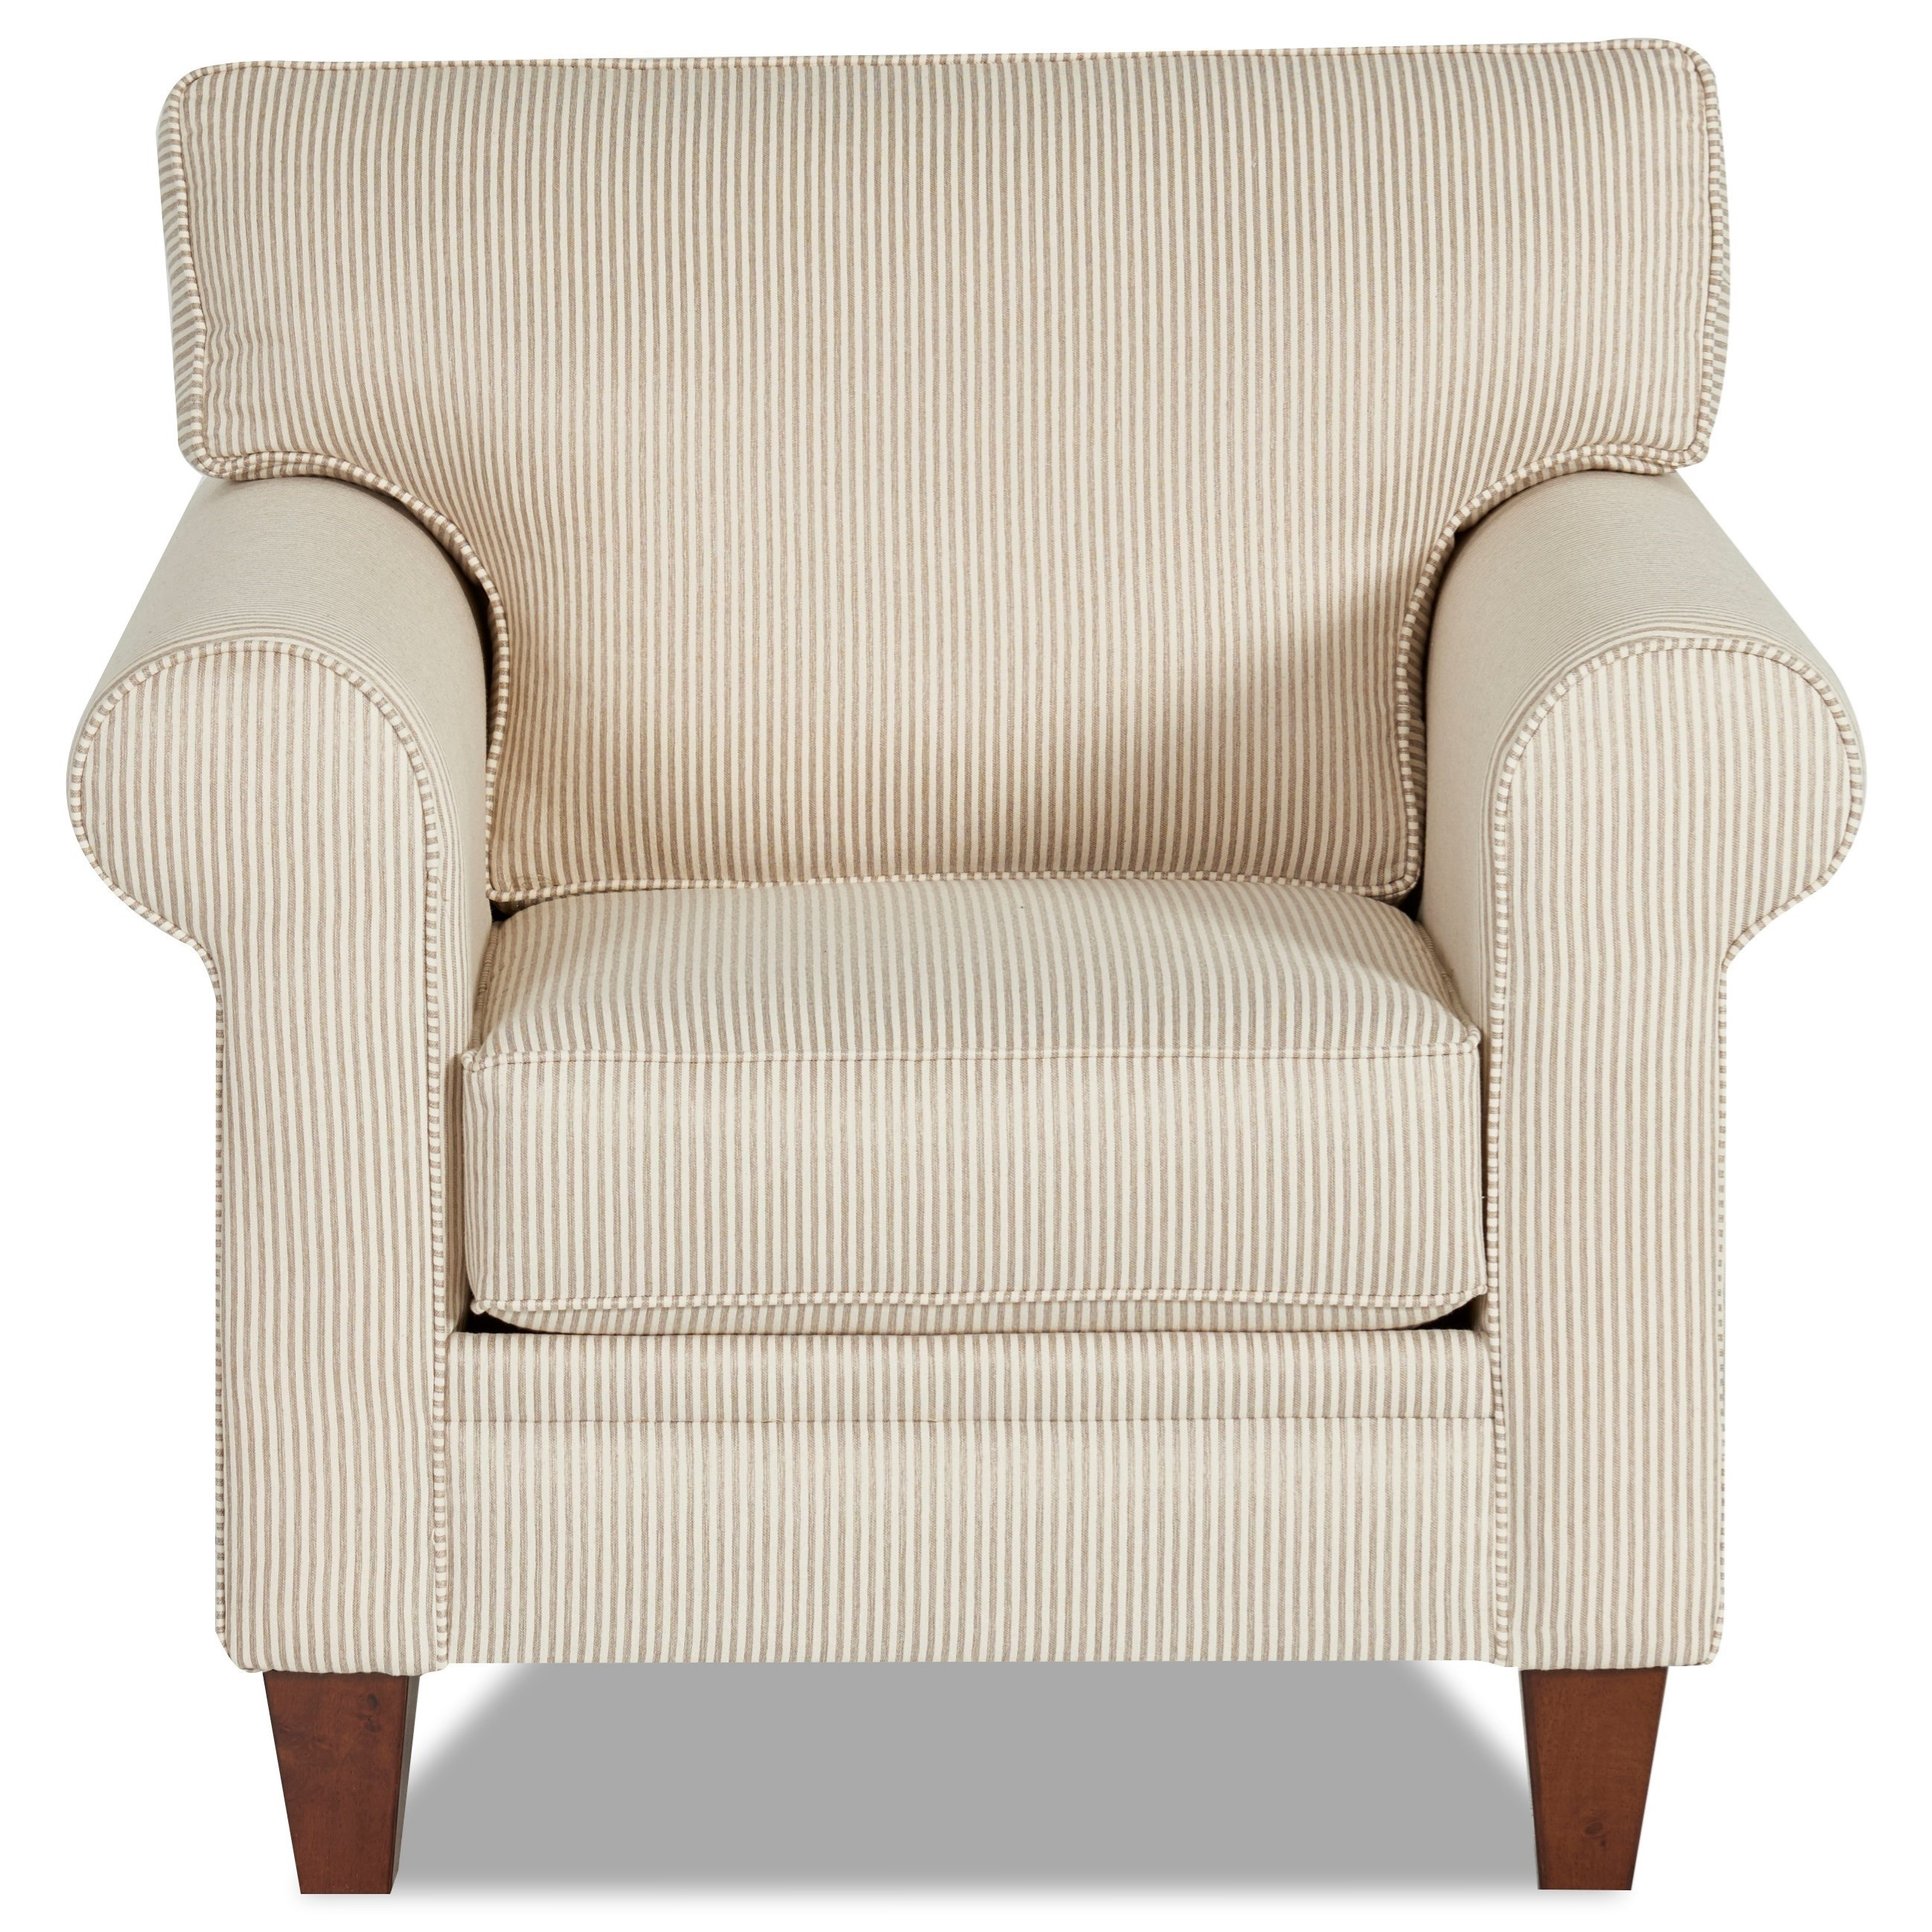 Klaussner Gates K44600 C Casual Chair | Hudsonu0027s Furniture | Upholstered  Chairs